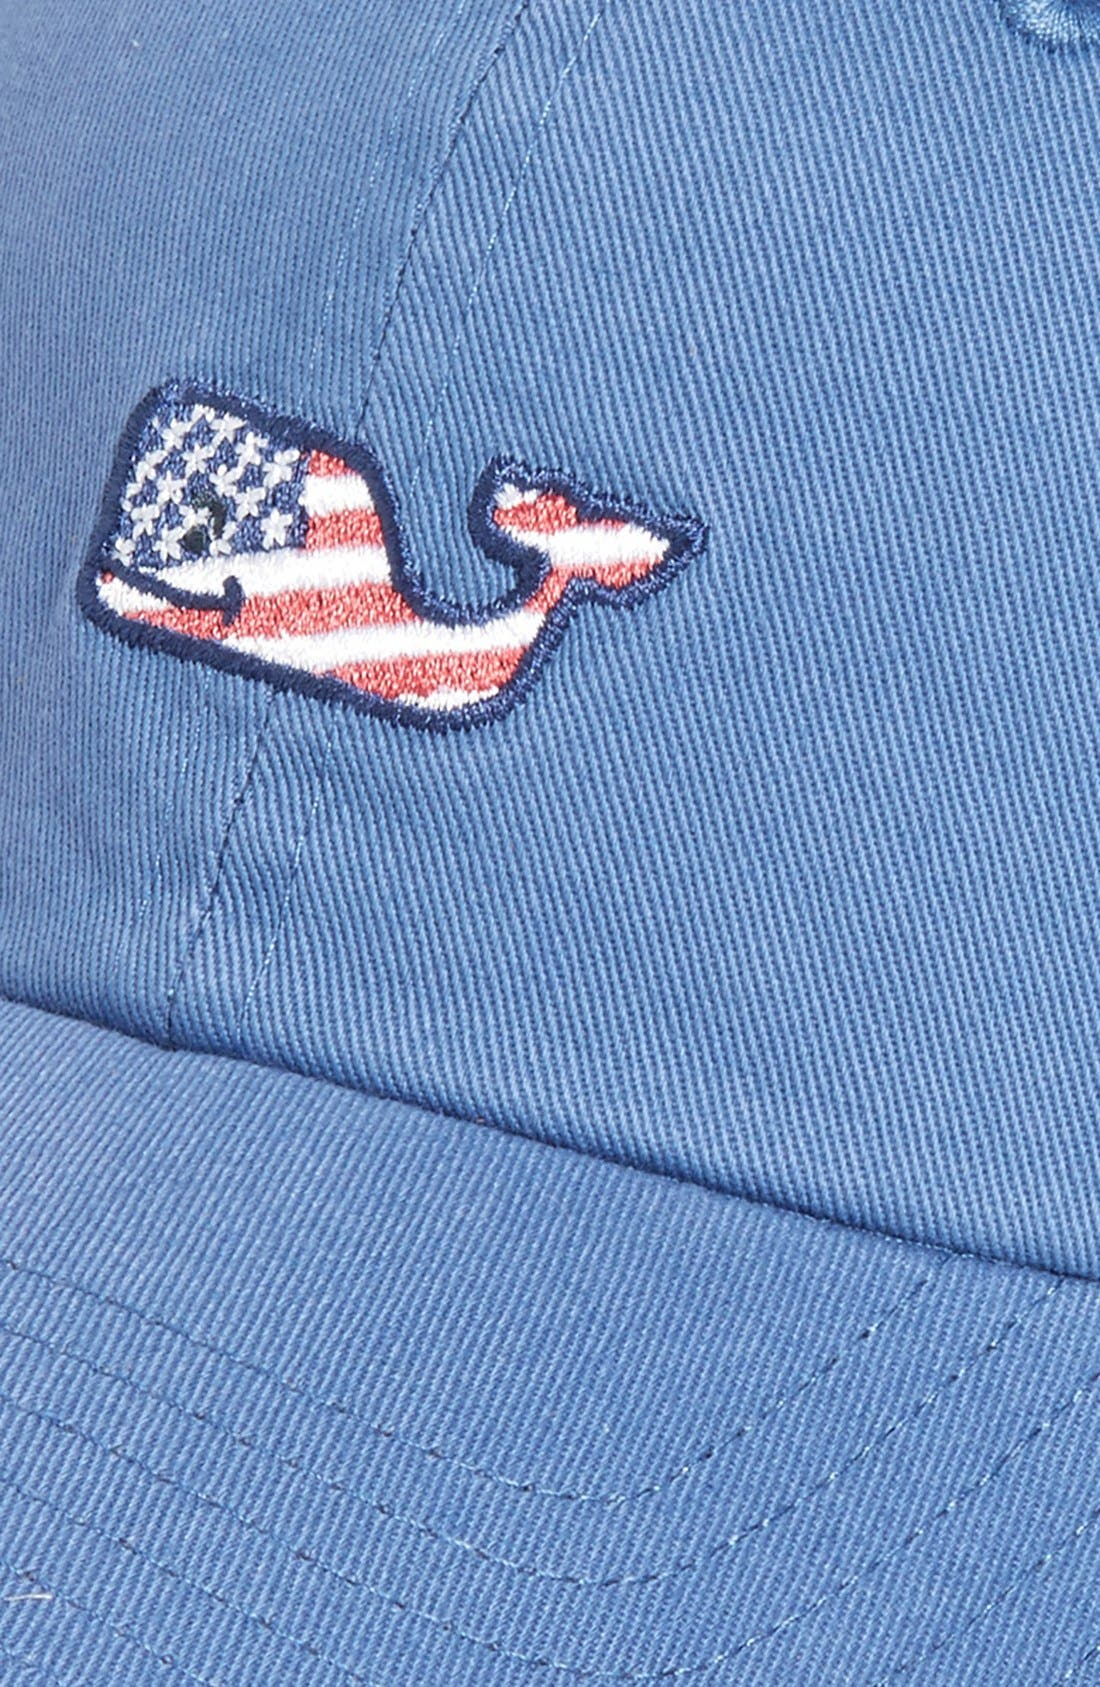 Alternate Image 3  - vineyard vines Flag Whale Logo Baseball Cap